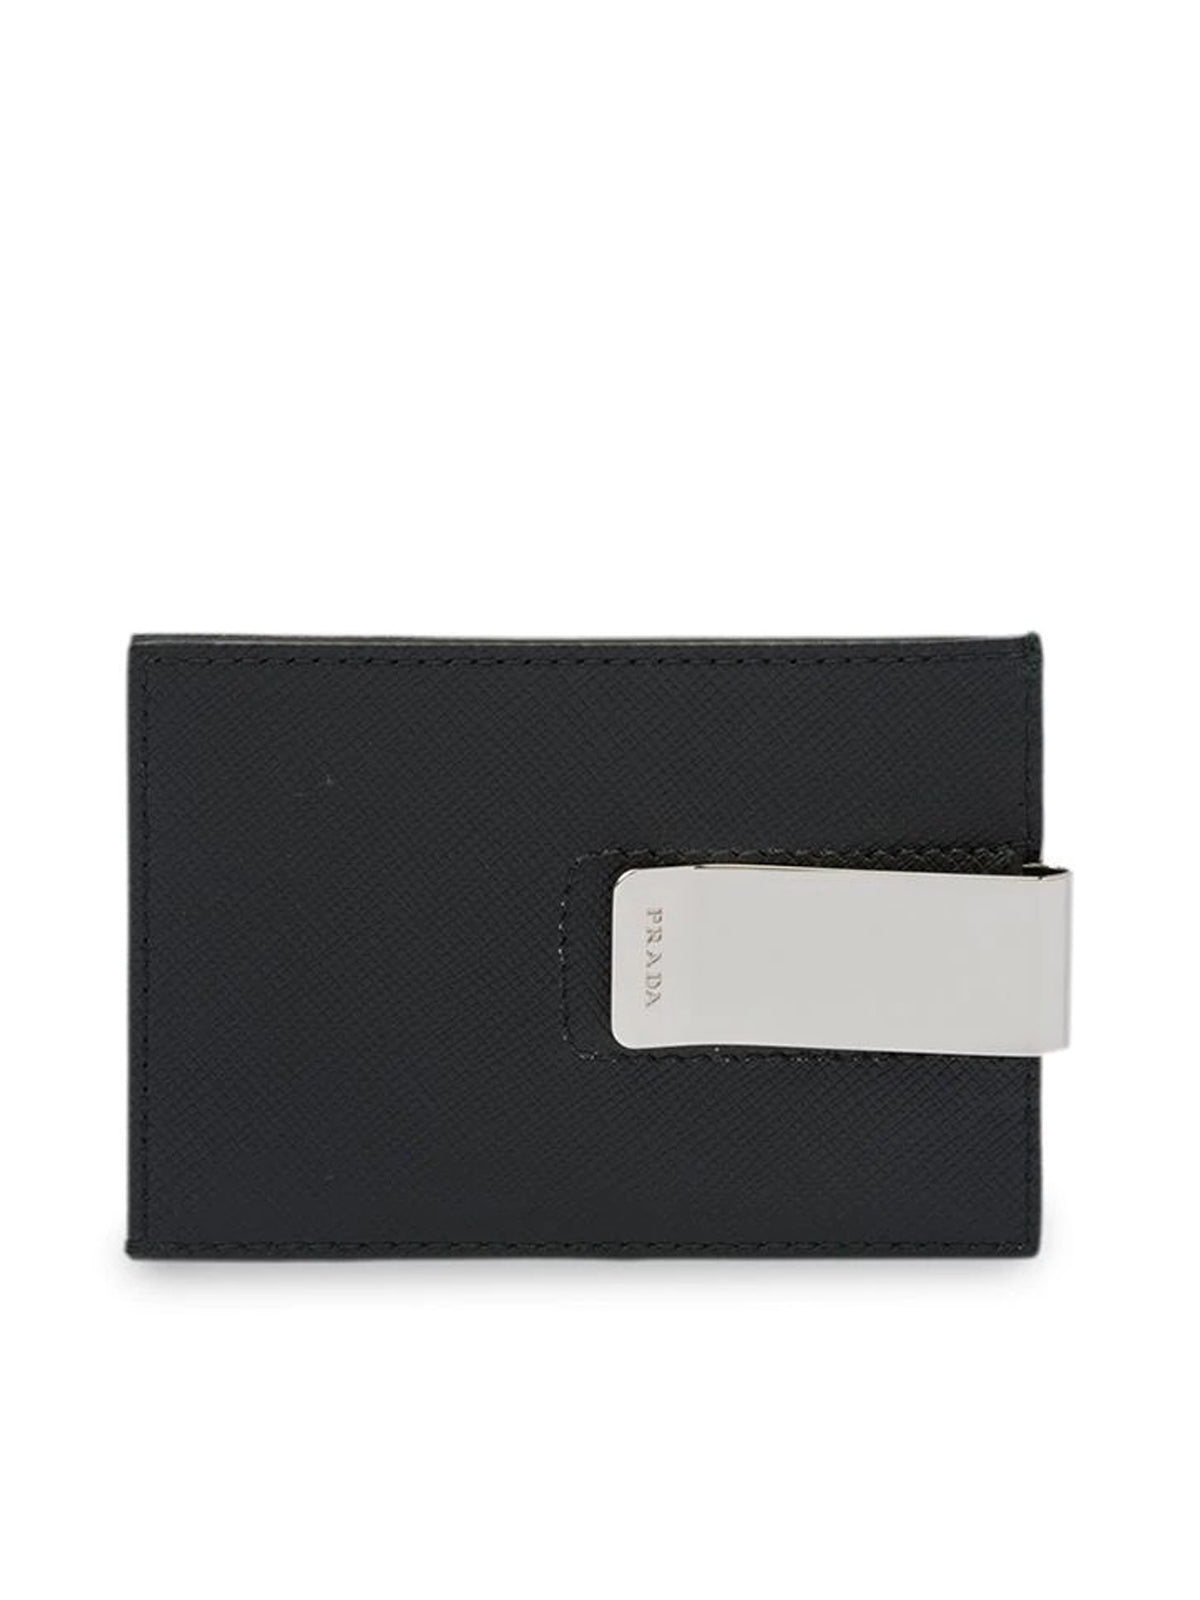 money clip cardholder